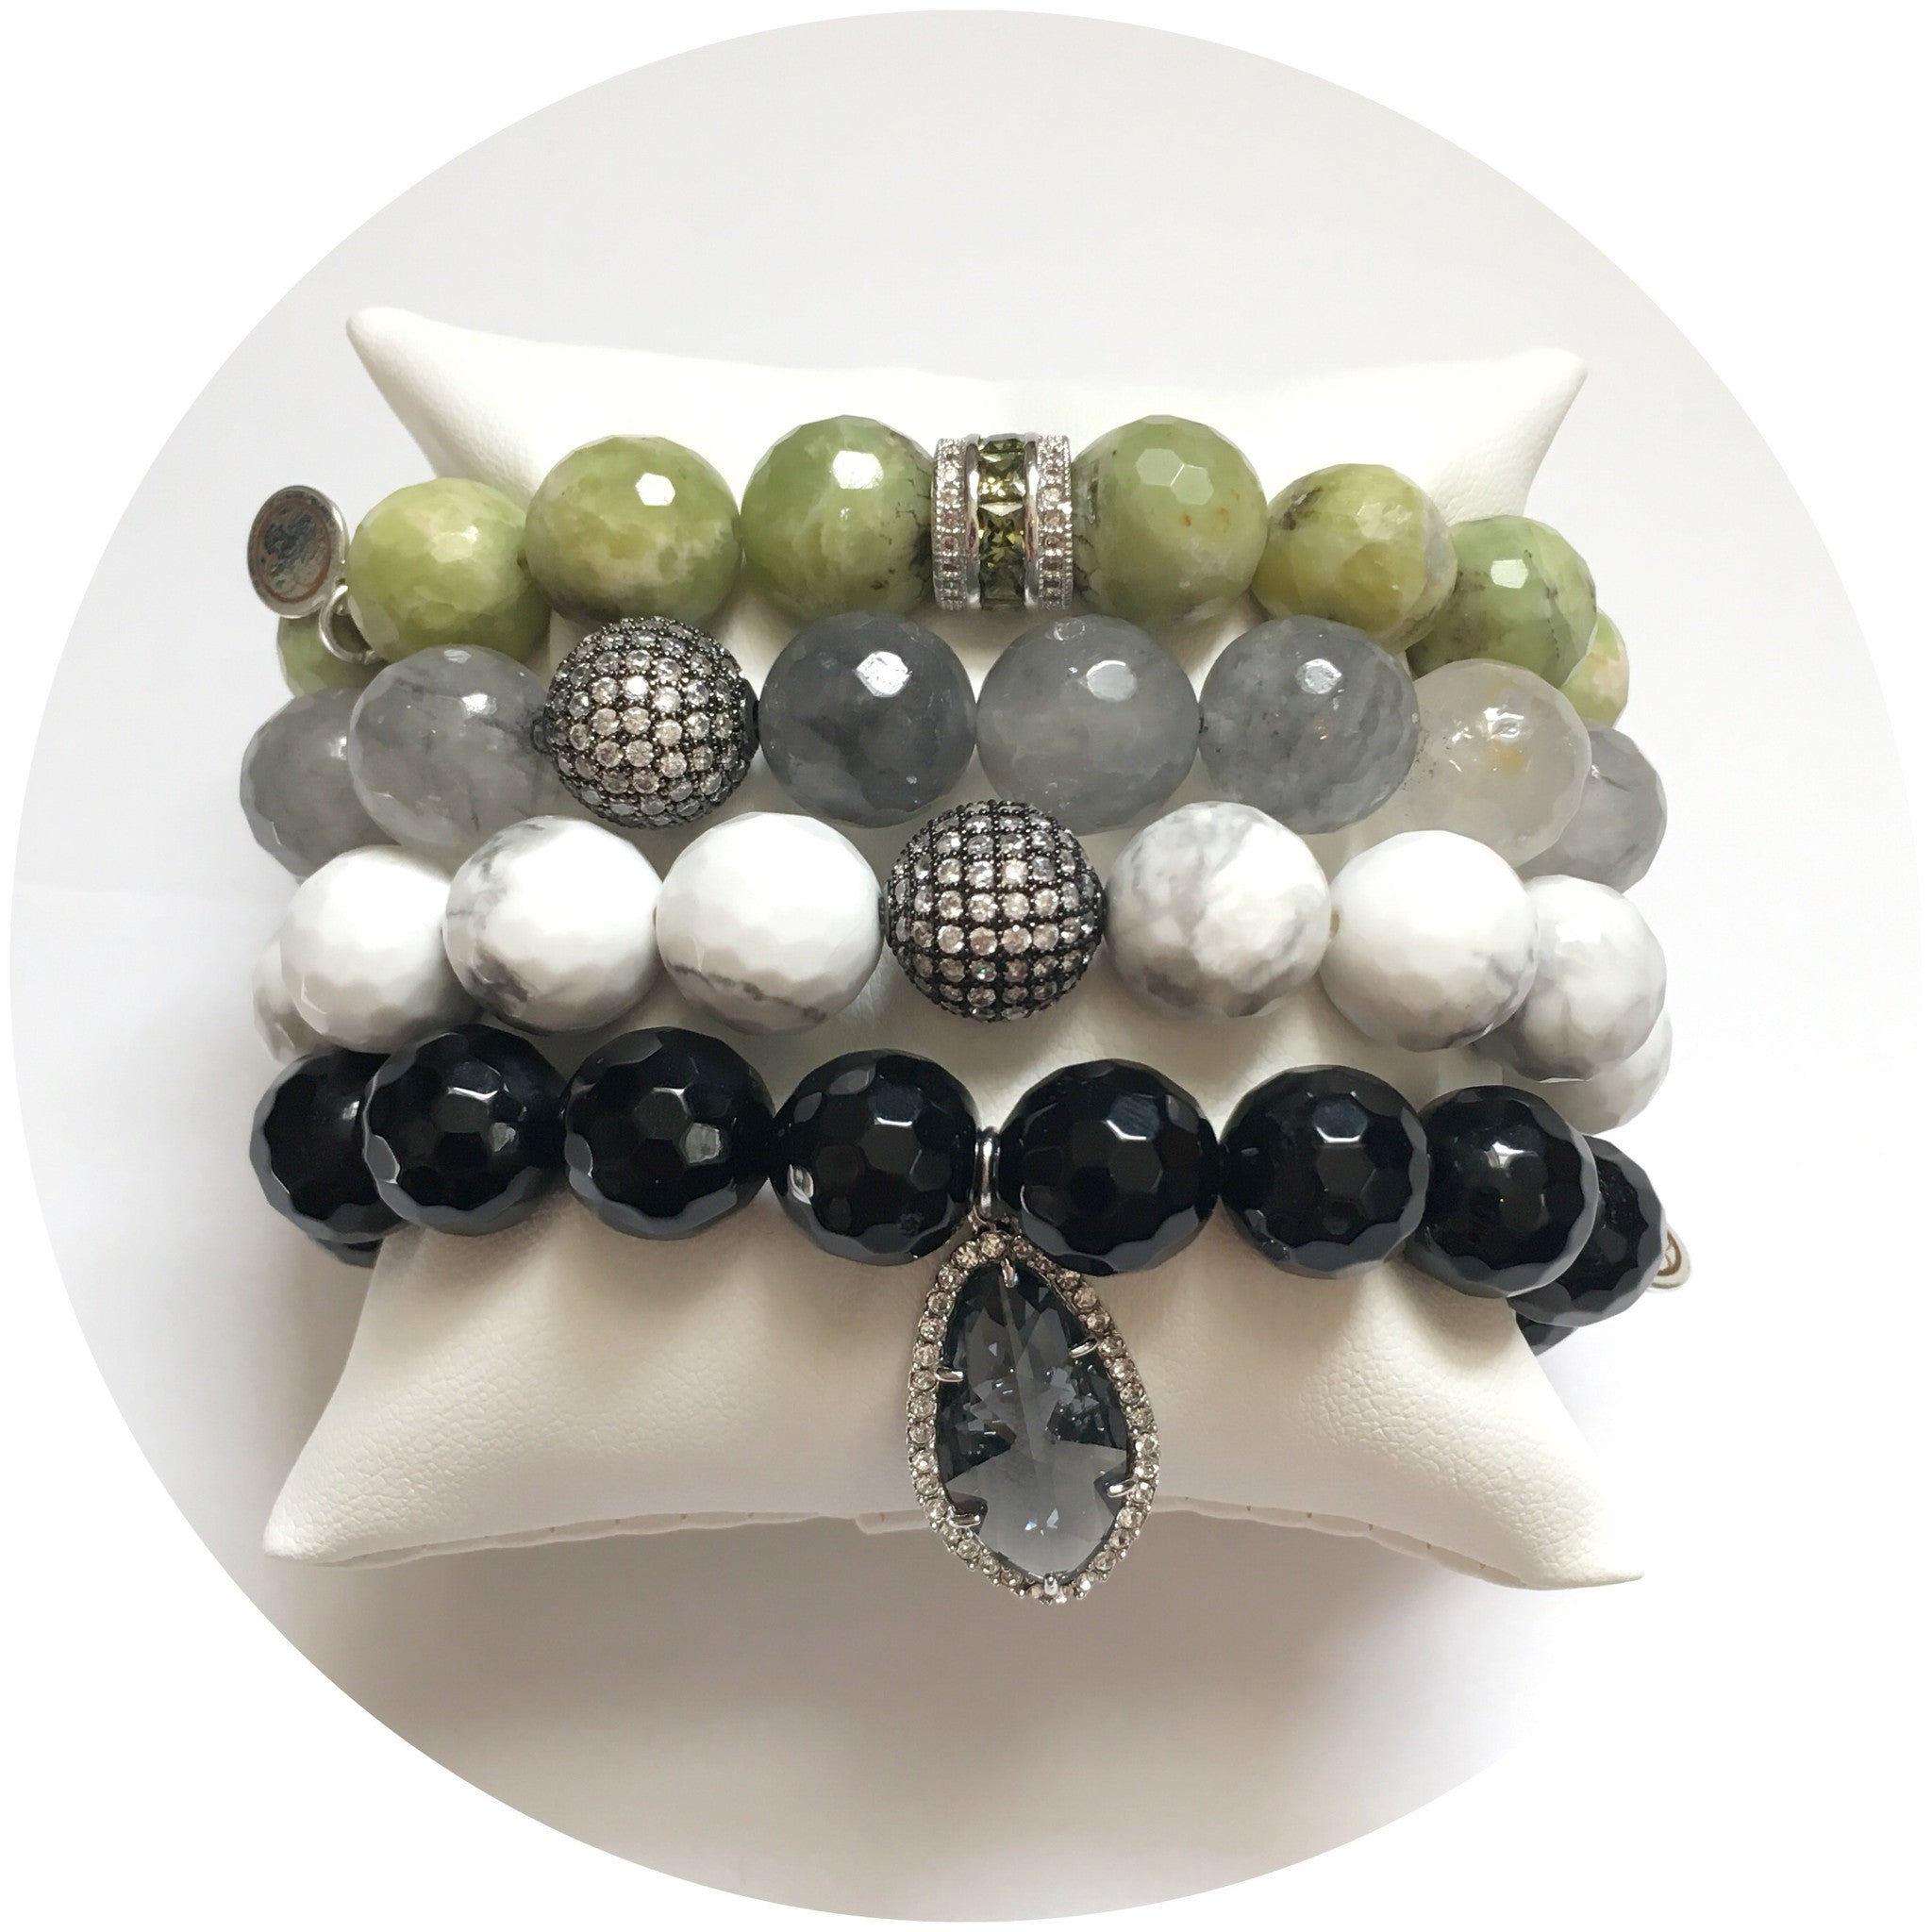 Green Garnet Arm party #4 - Oriana Lamarca LLC